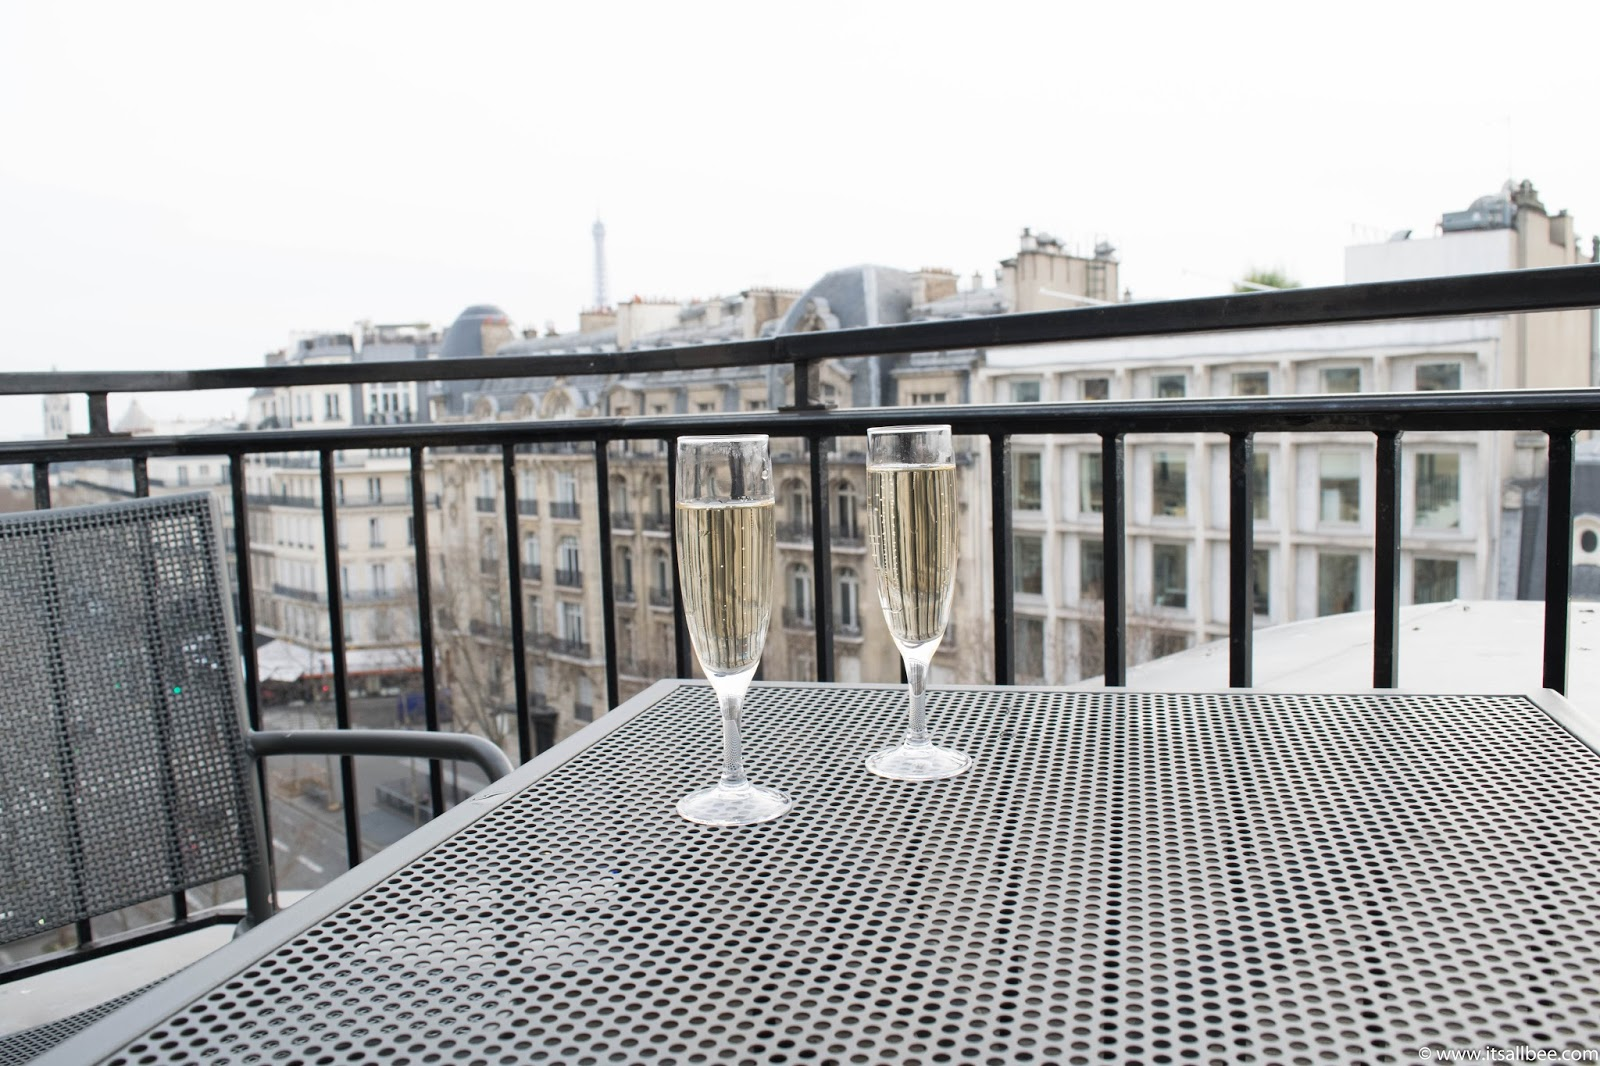 Paris Hotels With Views of Eiffel Tower [and Arc de Triomphe] | hotels in paris with view of eiffel tower